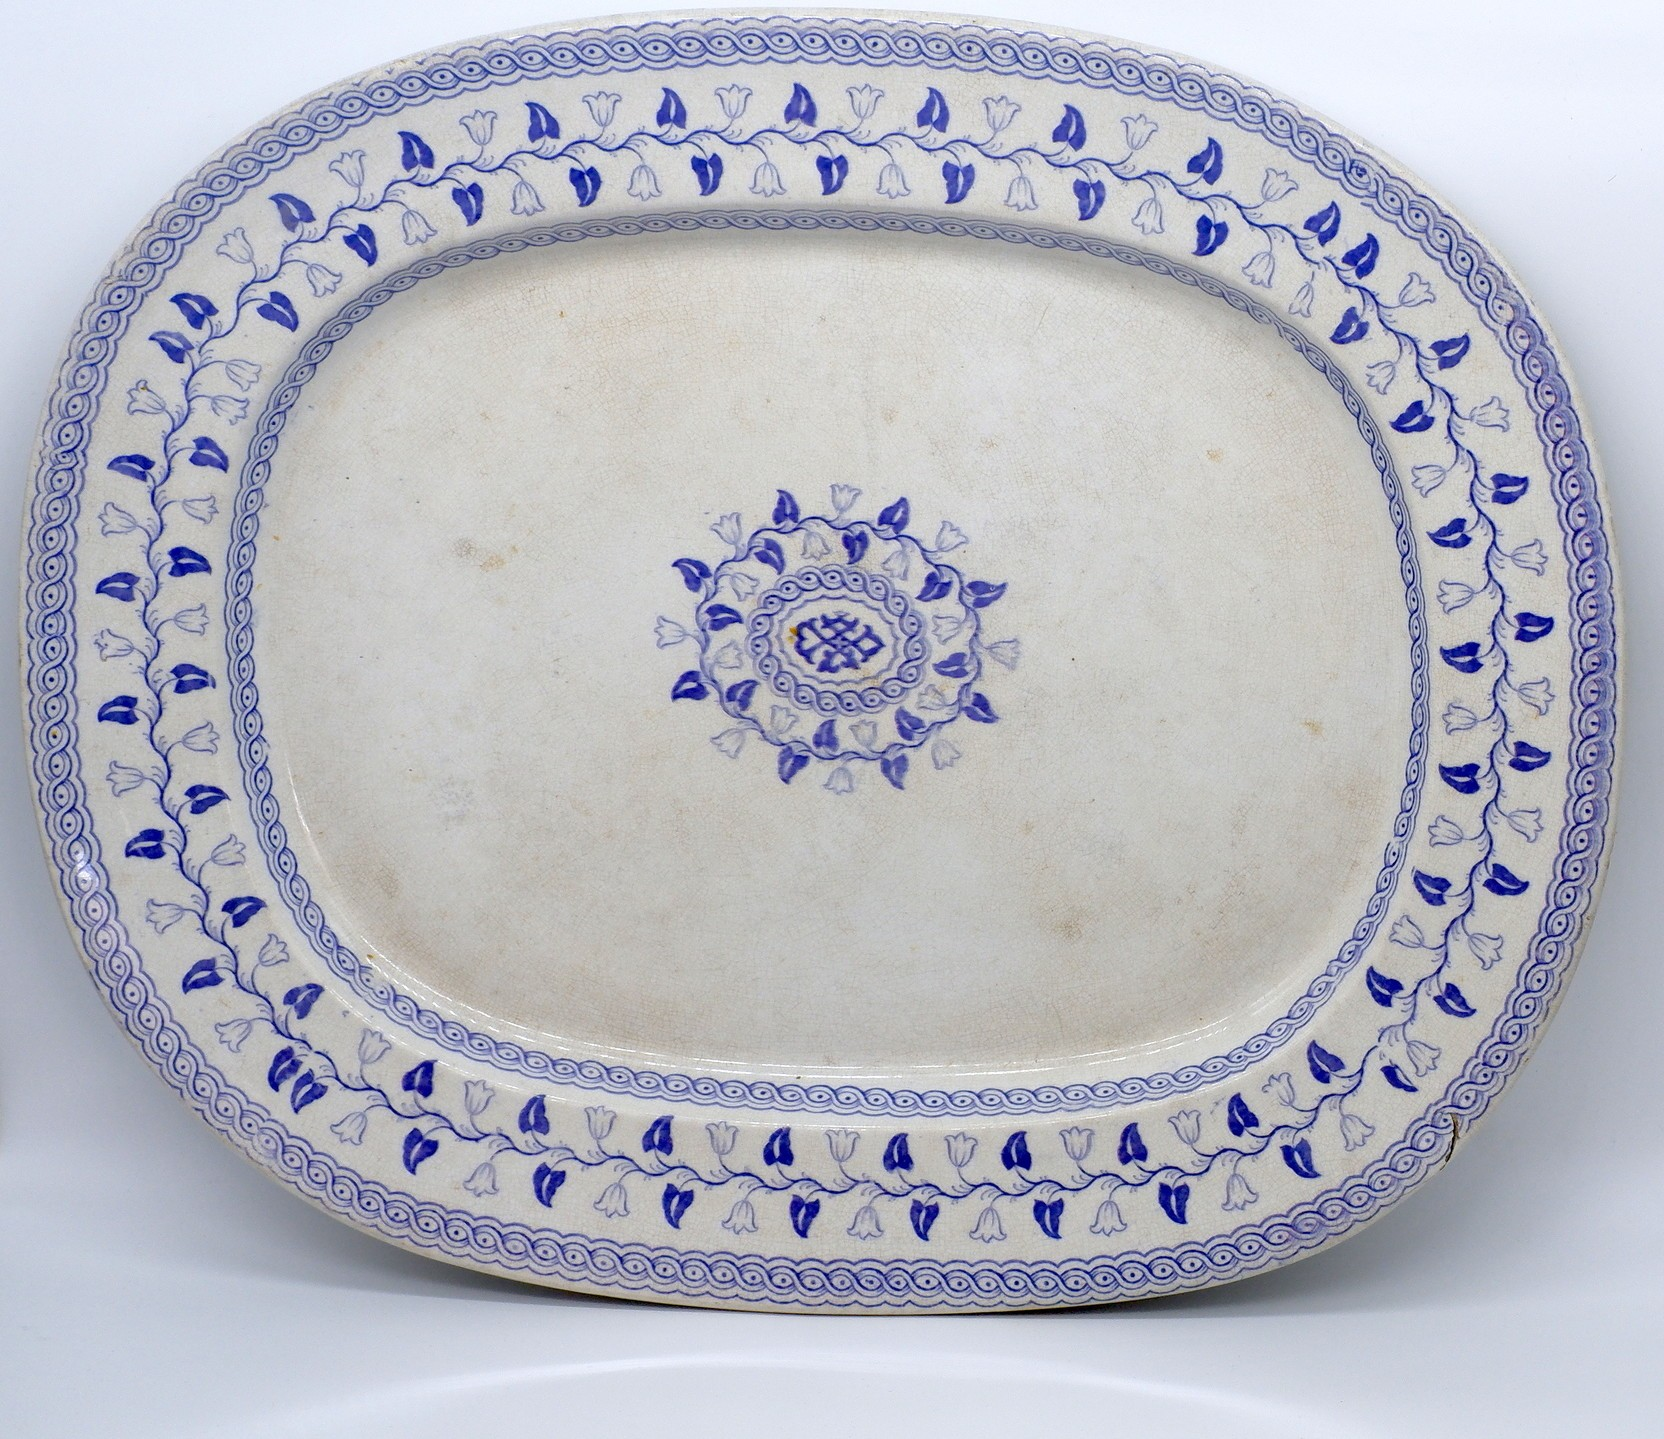 'Mid 19 Century Large English Serving Dish Marked Palace Pattern'